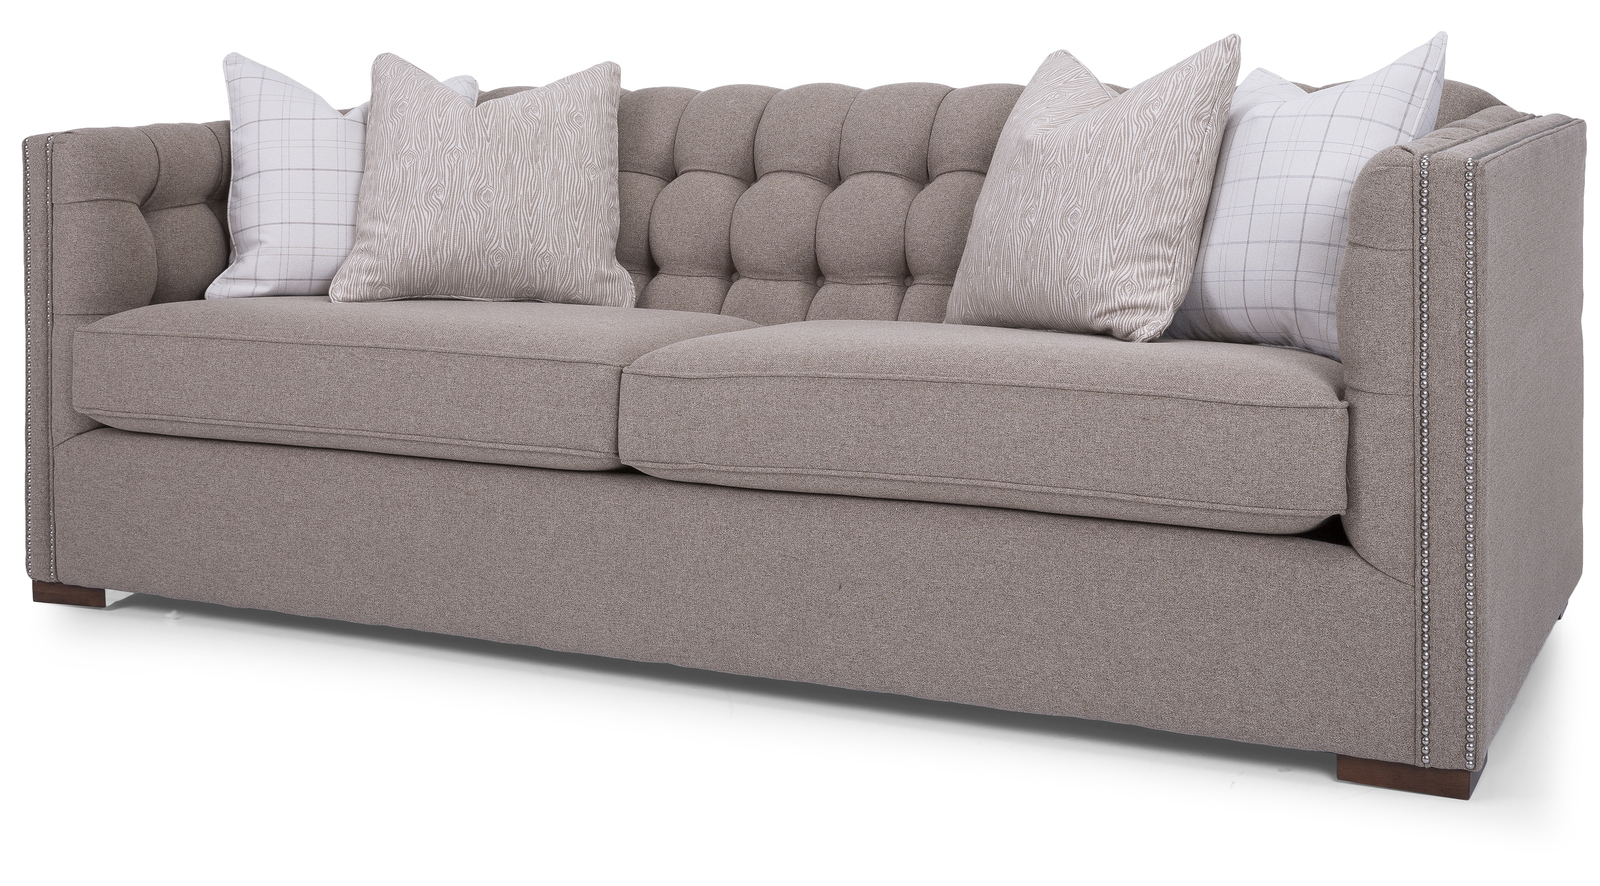 Sofa Salon Drdp 7793 sofa Suite Decor Rest Furniture Ltd